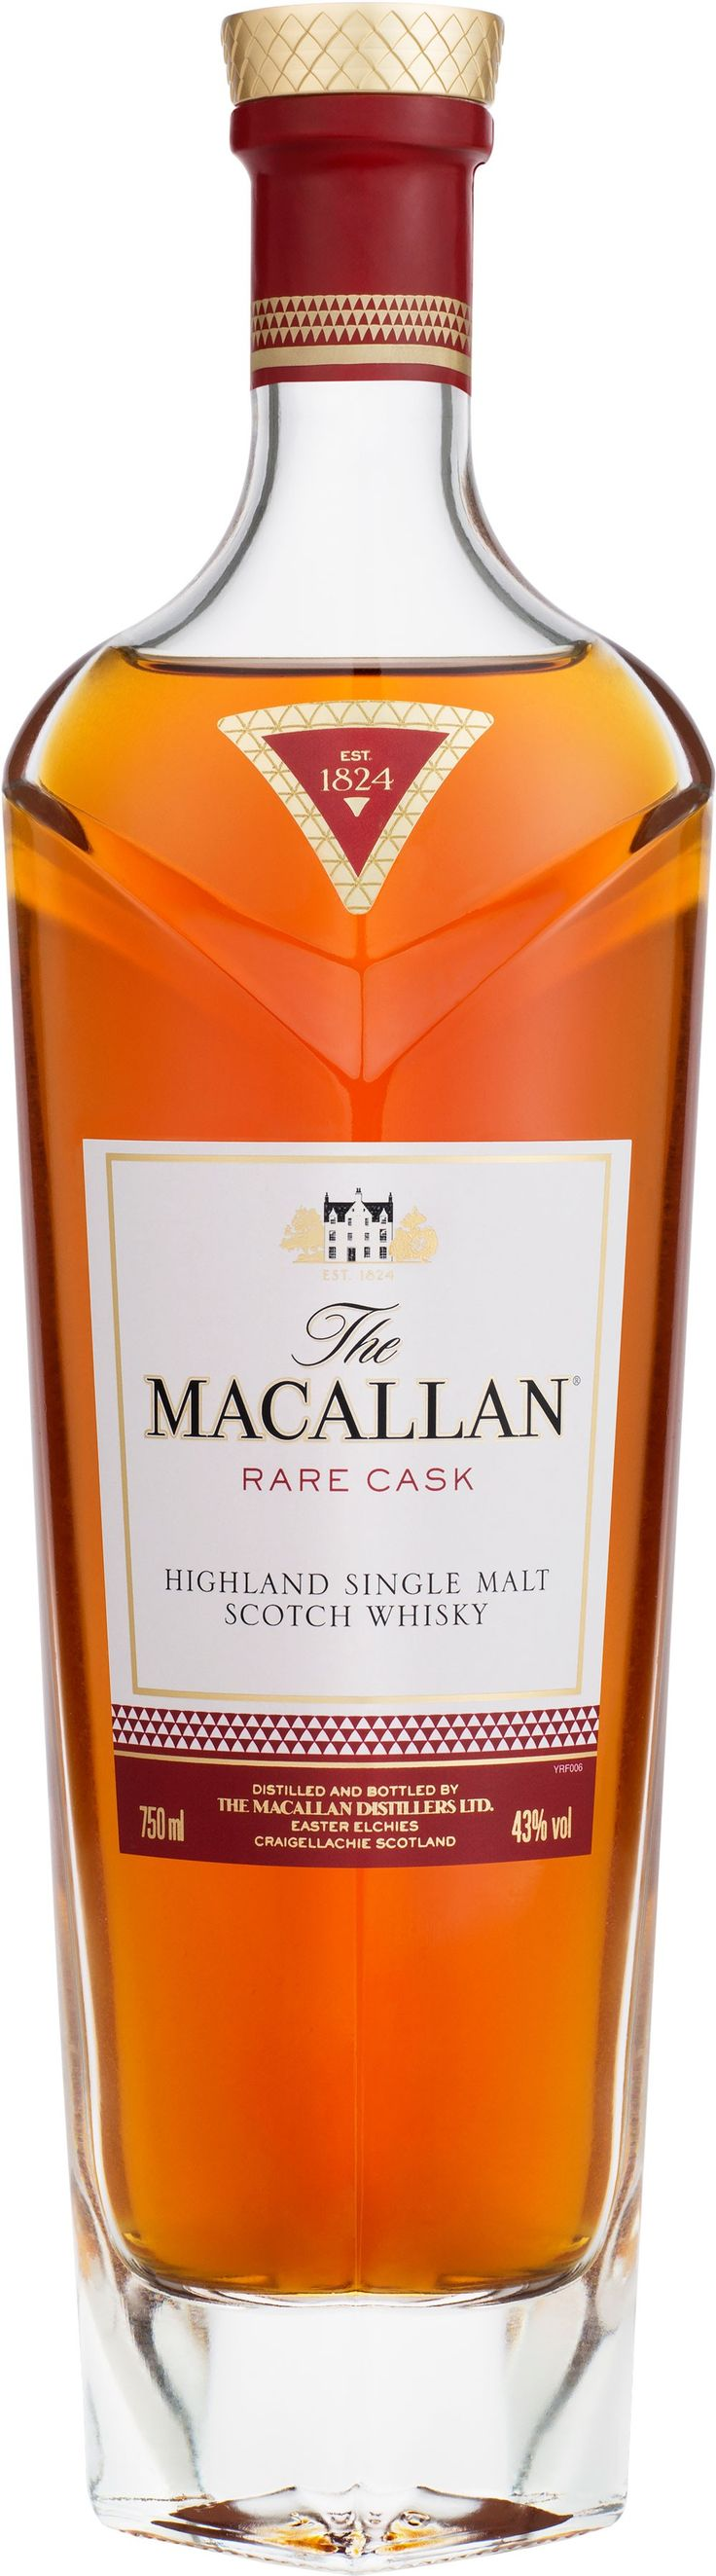 Macallan Rare Cask Single Malt Scotch Whisky | @Caskers